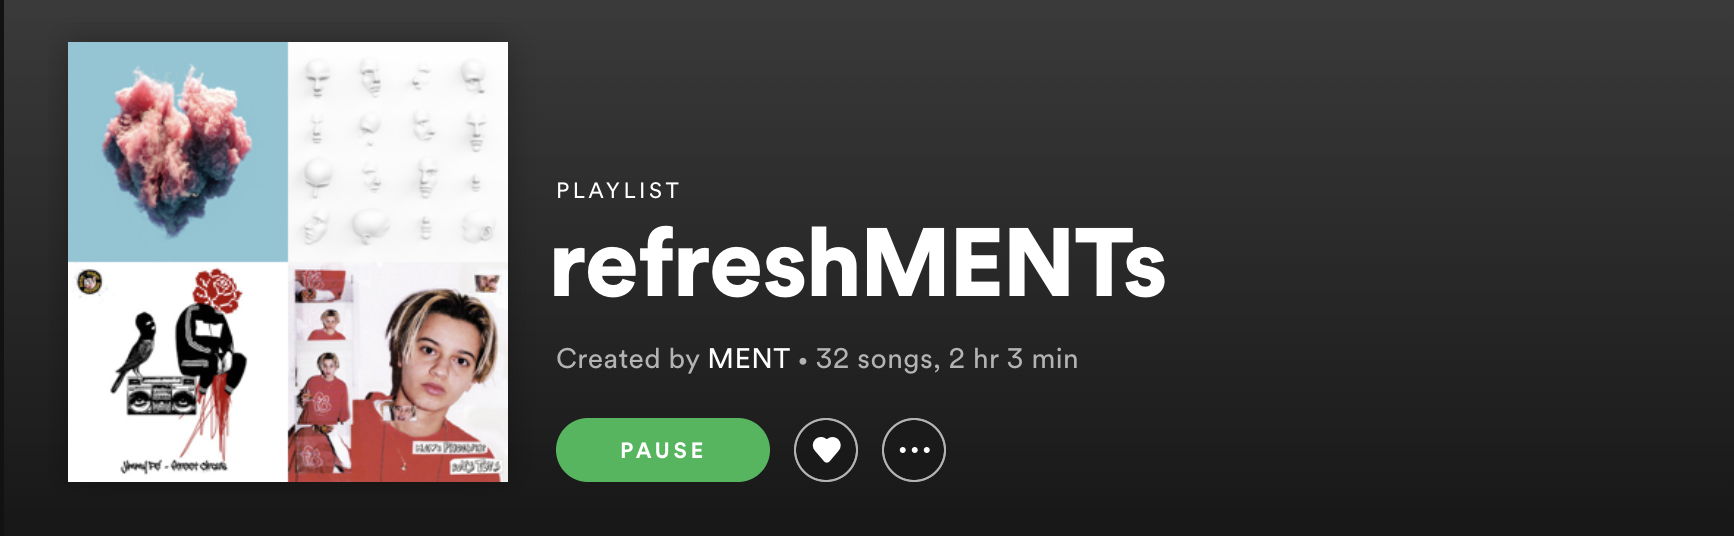 Spotify playlist screenshot.